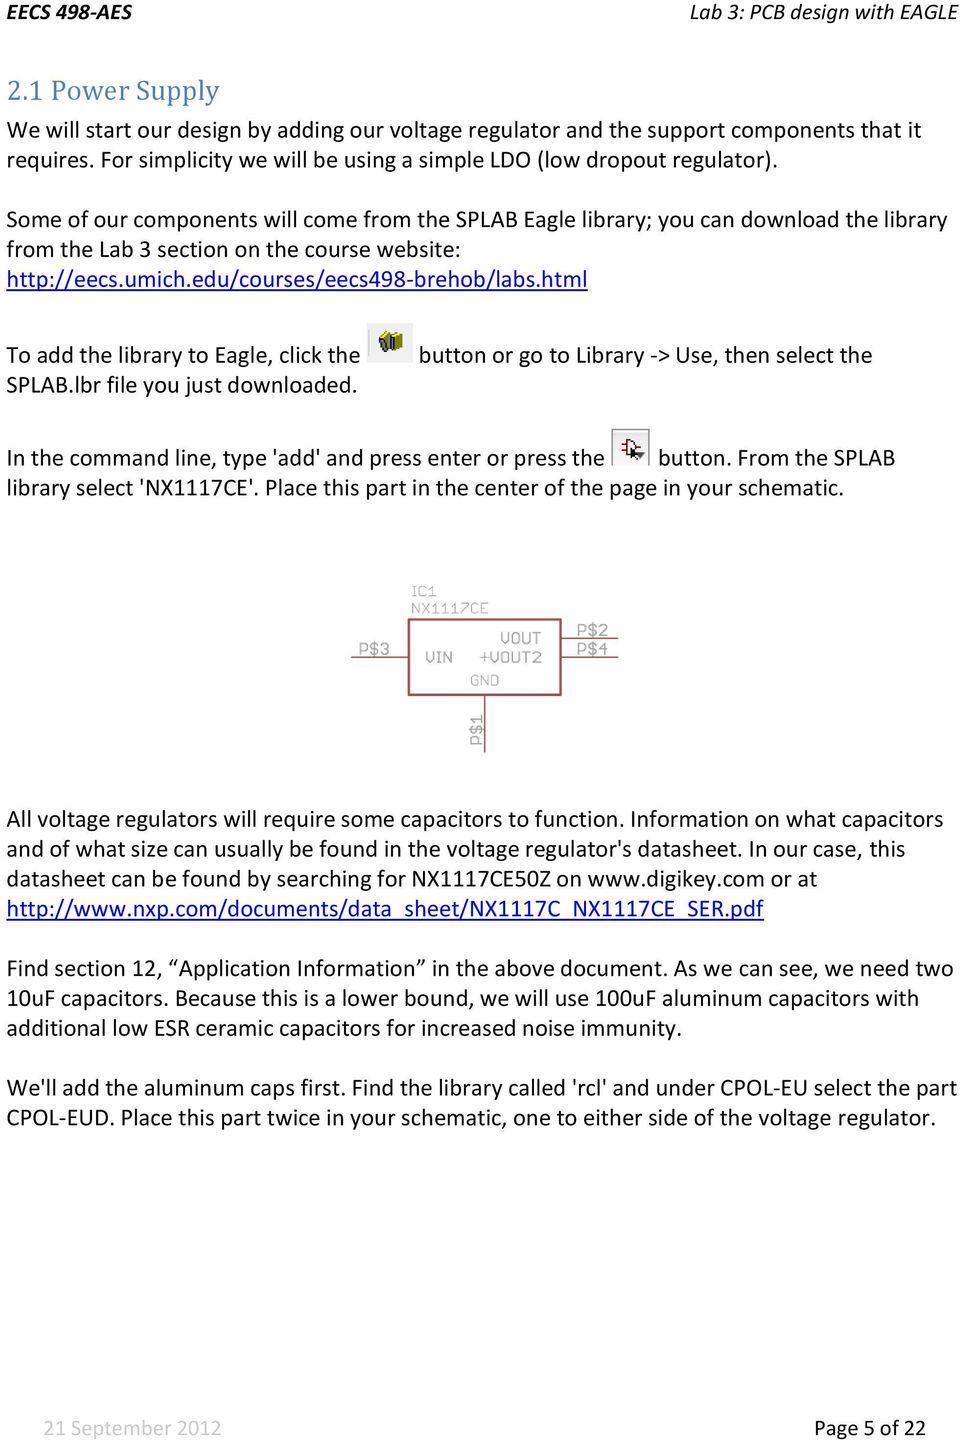 Lab 3 Pcb Design With Eagle Pdf Electrical Schematic Digikey Html To Add The Library Click Splablbr File You Just